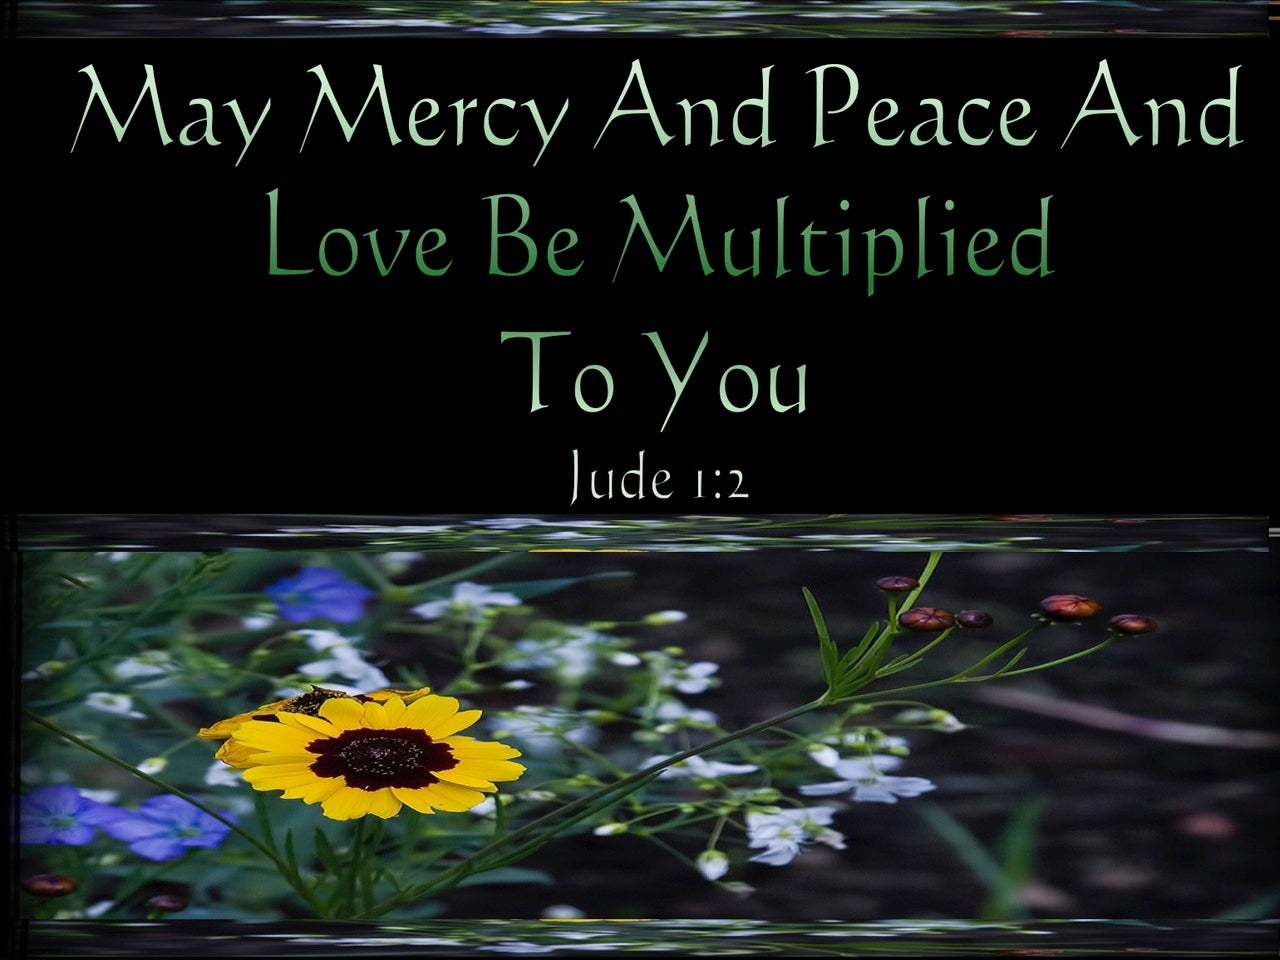 Jude 1:2 Mercy And Peace And Love Be Multiplied To You (green)